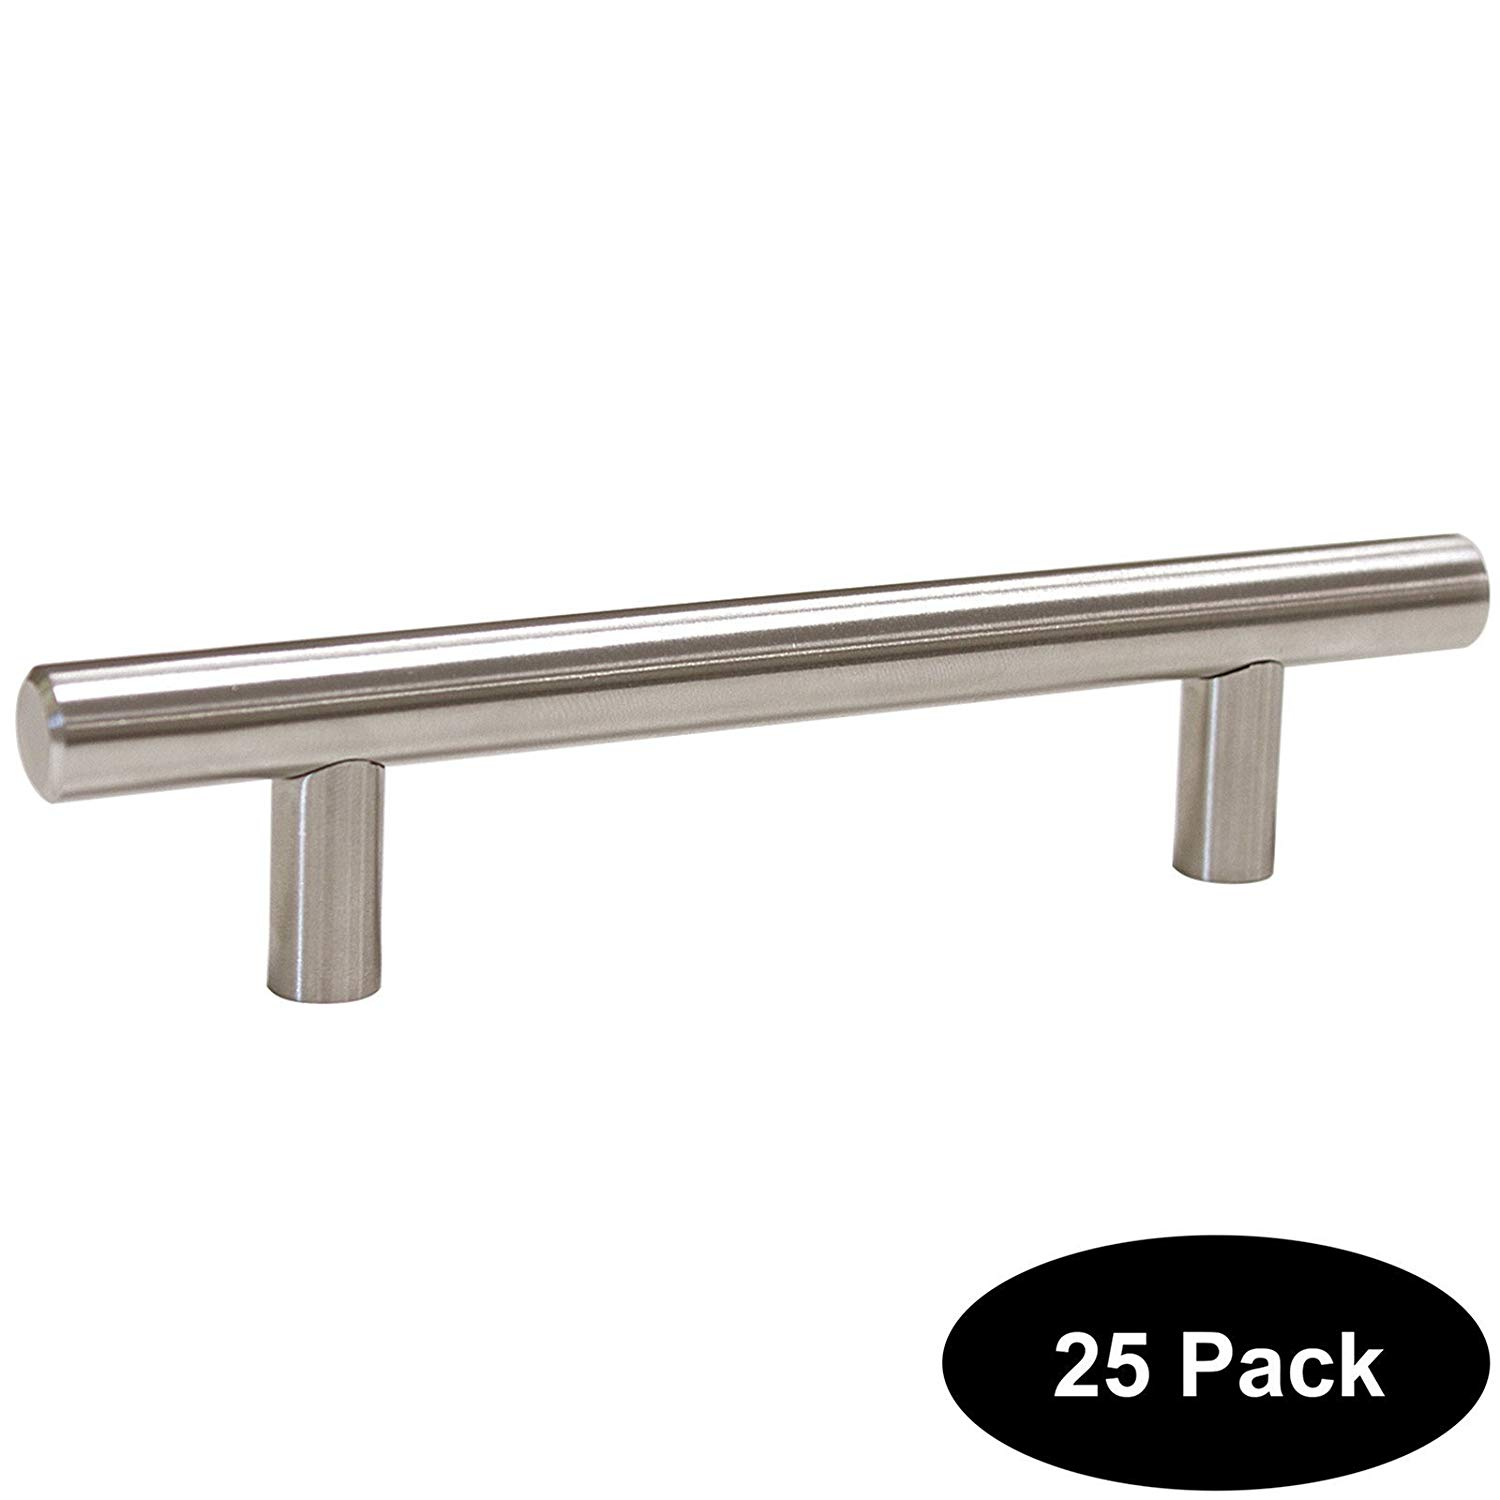 25 pack 96mm(3.75inch) Hole Centers Stainless Steel Kitchen Cabinet Door Handles and Pulls Cabinet Knobs Length 150mm(6inch) Brushed Nickel